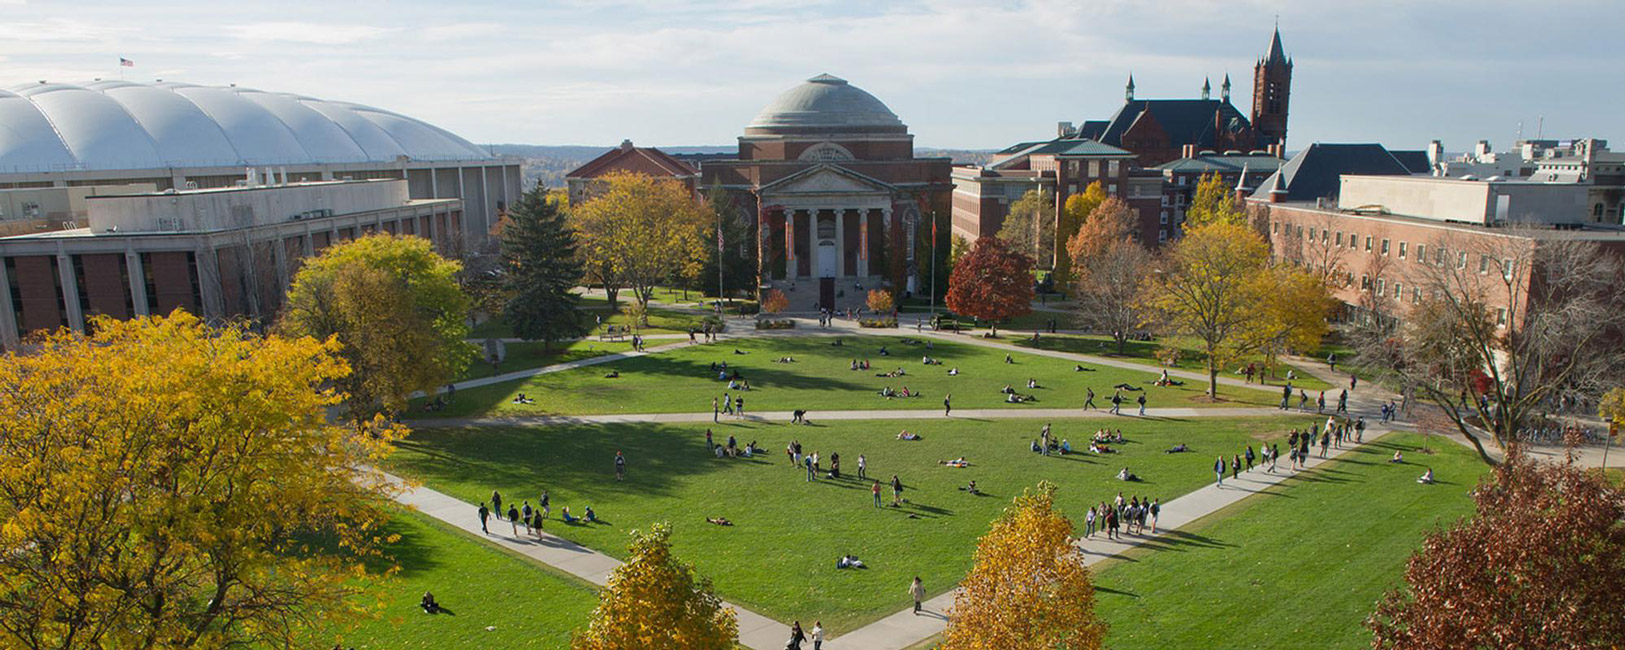 Syracuse University's Shaw Quadrangle is located near the Carrier Dome.